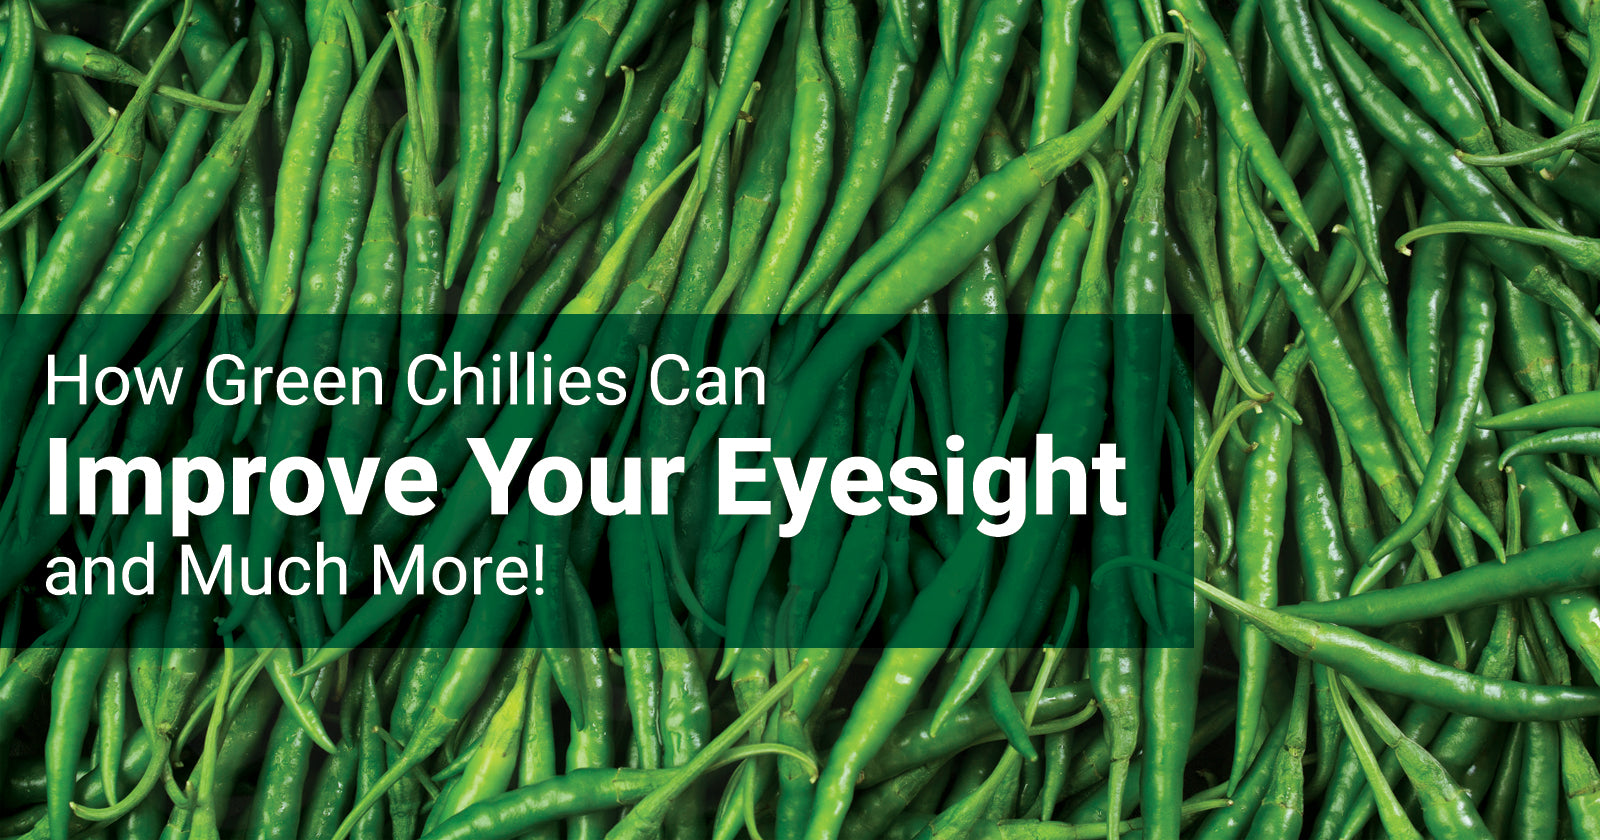 How Green Chillies Can Improve Your Eyesight and Much More!